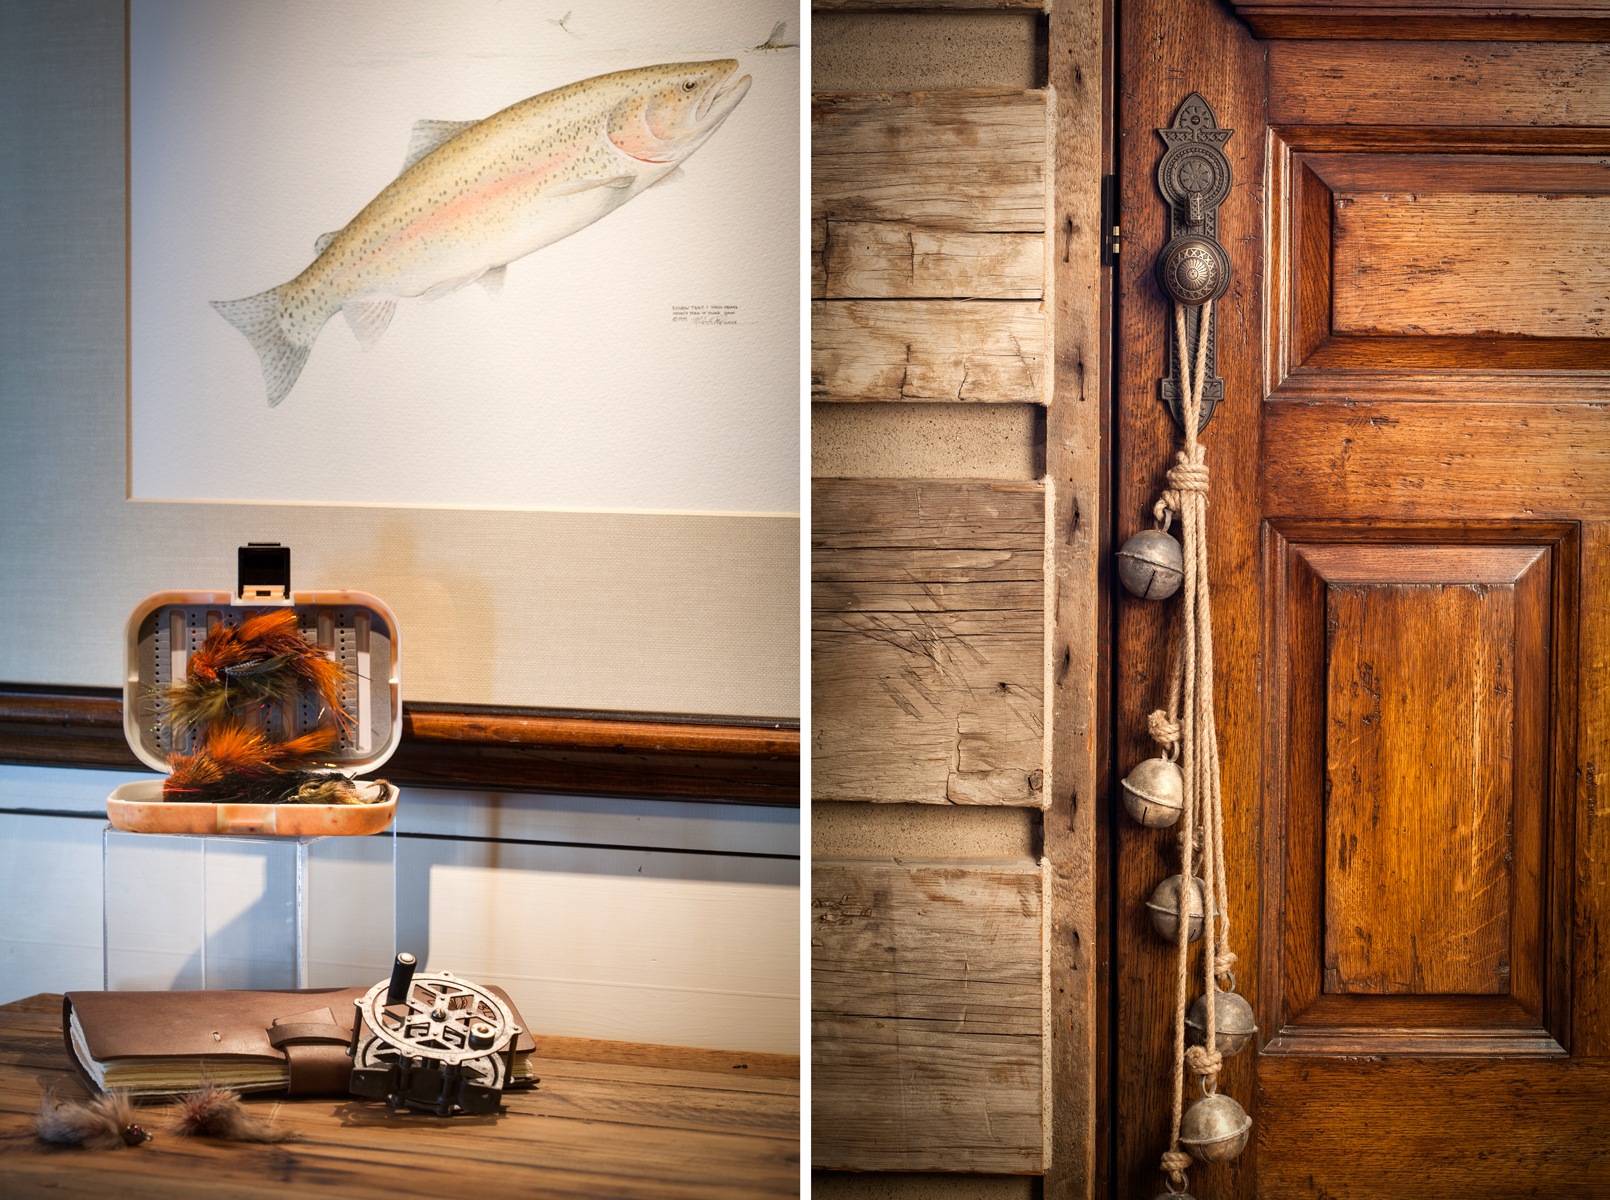 This diptic features two vignettes from a rustic log home made of reclaimed timber eat of Park City, UT. The first photo is a close up of an antique fly fishing reel on top of a wooden bureau with a hand sketched picture of a trout behind. The second is of a string of antique slay bells hanging from a wooden door .Architectural Photography by: Paul Richer / RICHER IMAGES.